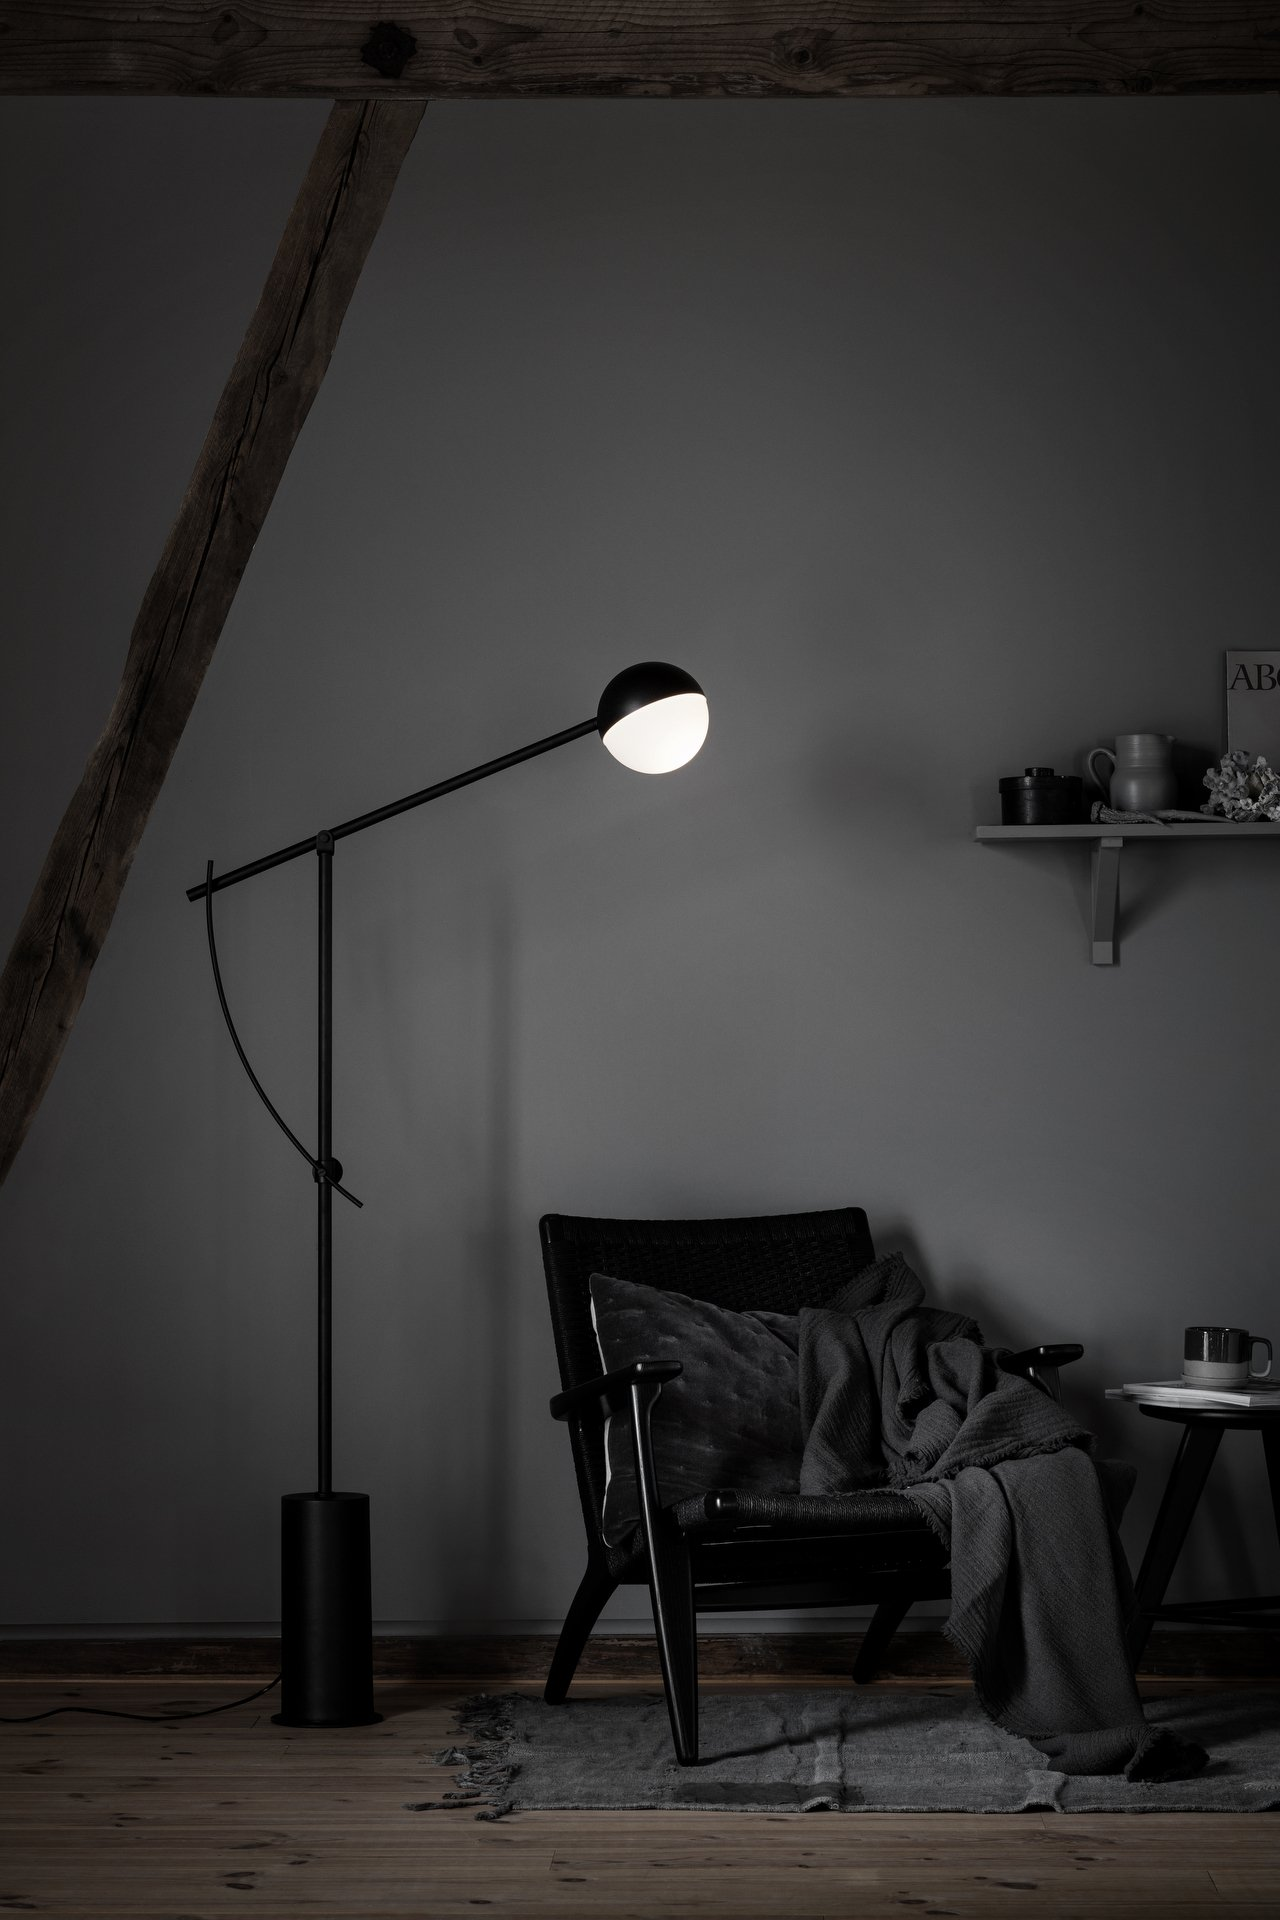 The 'Balance' light by Yuue for Northern Lighting.